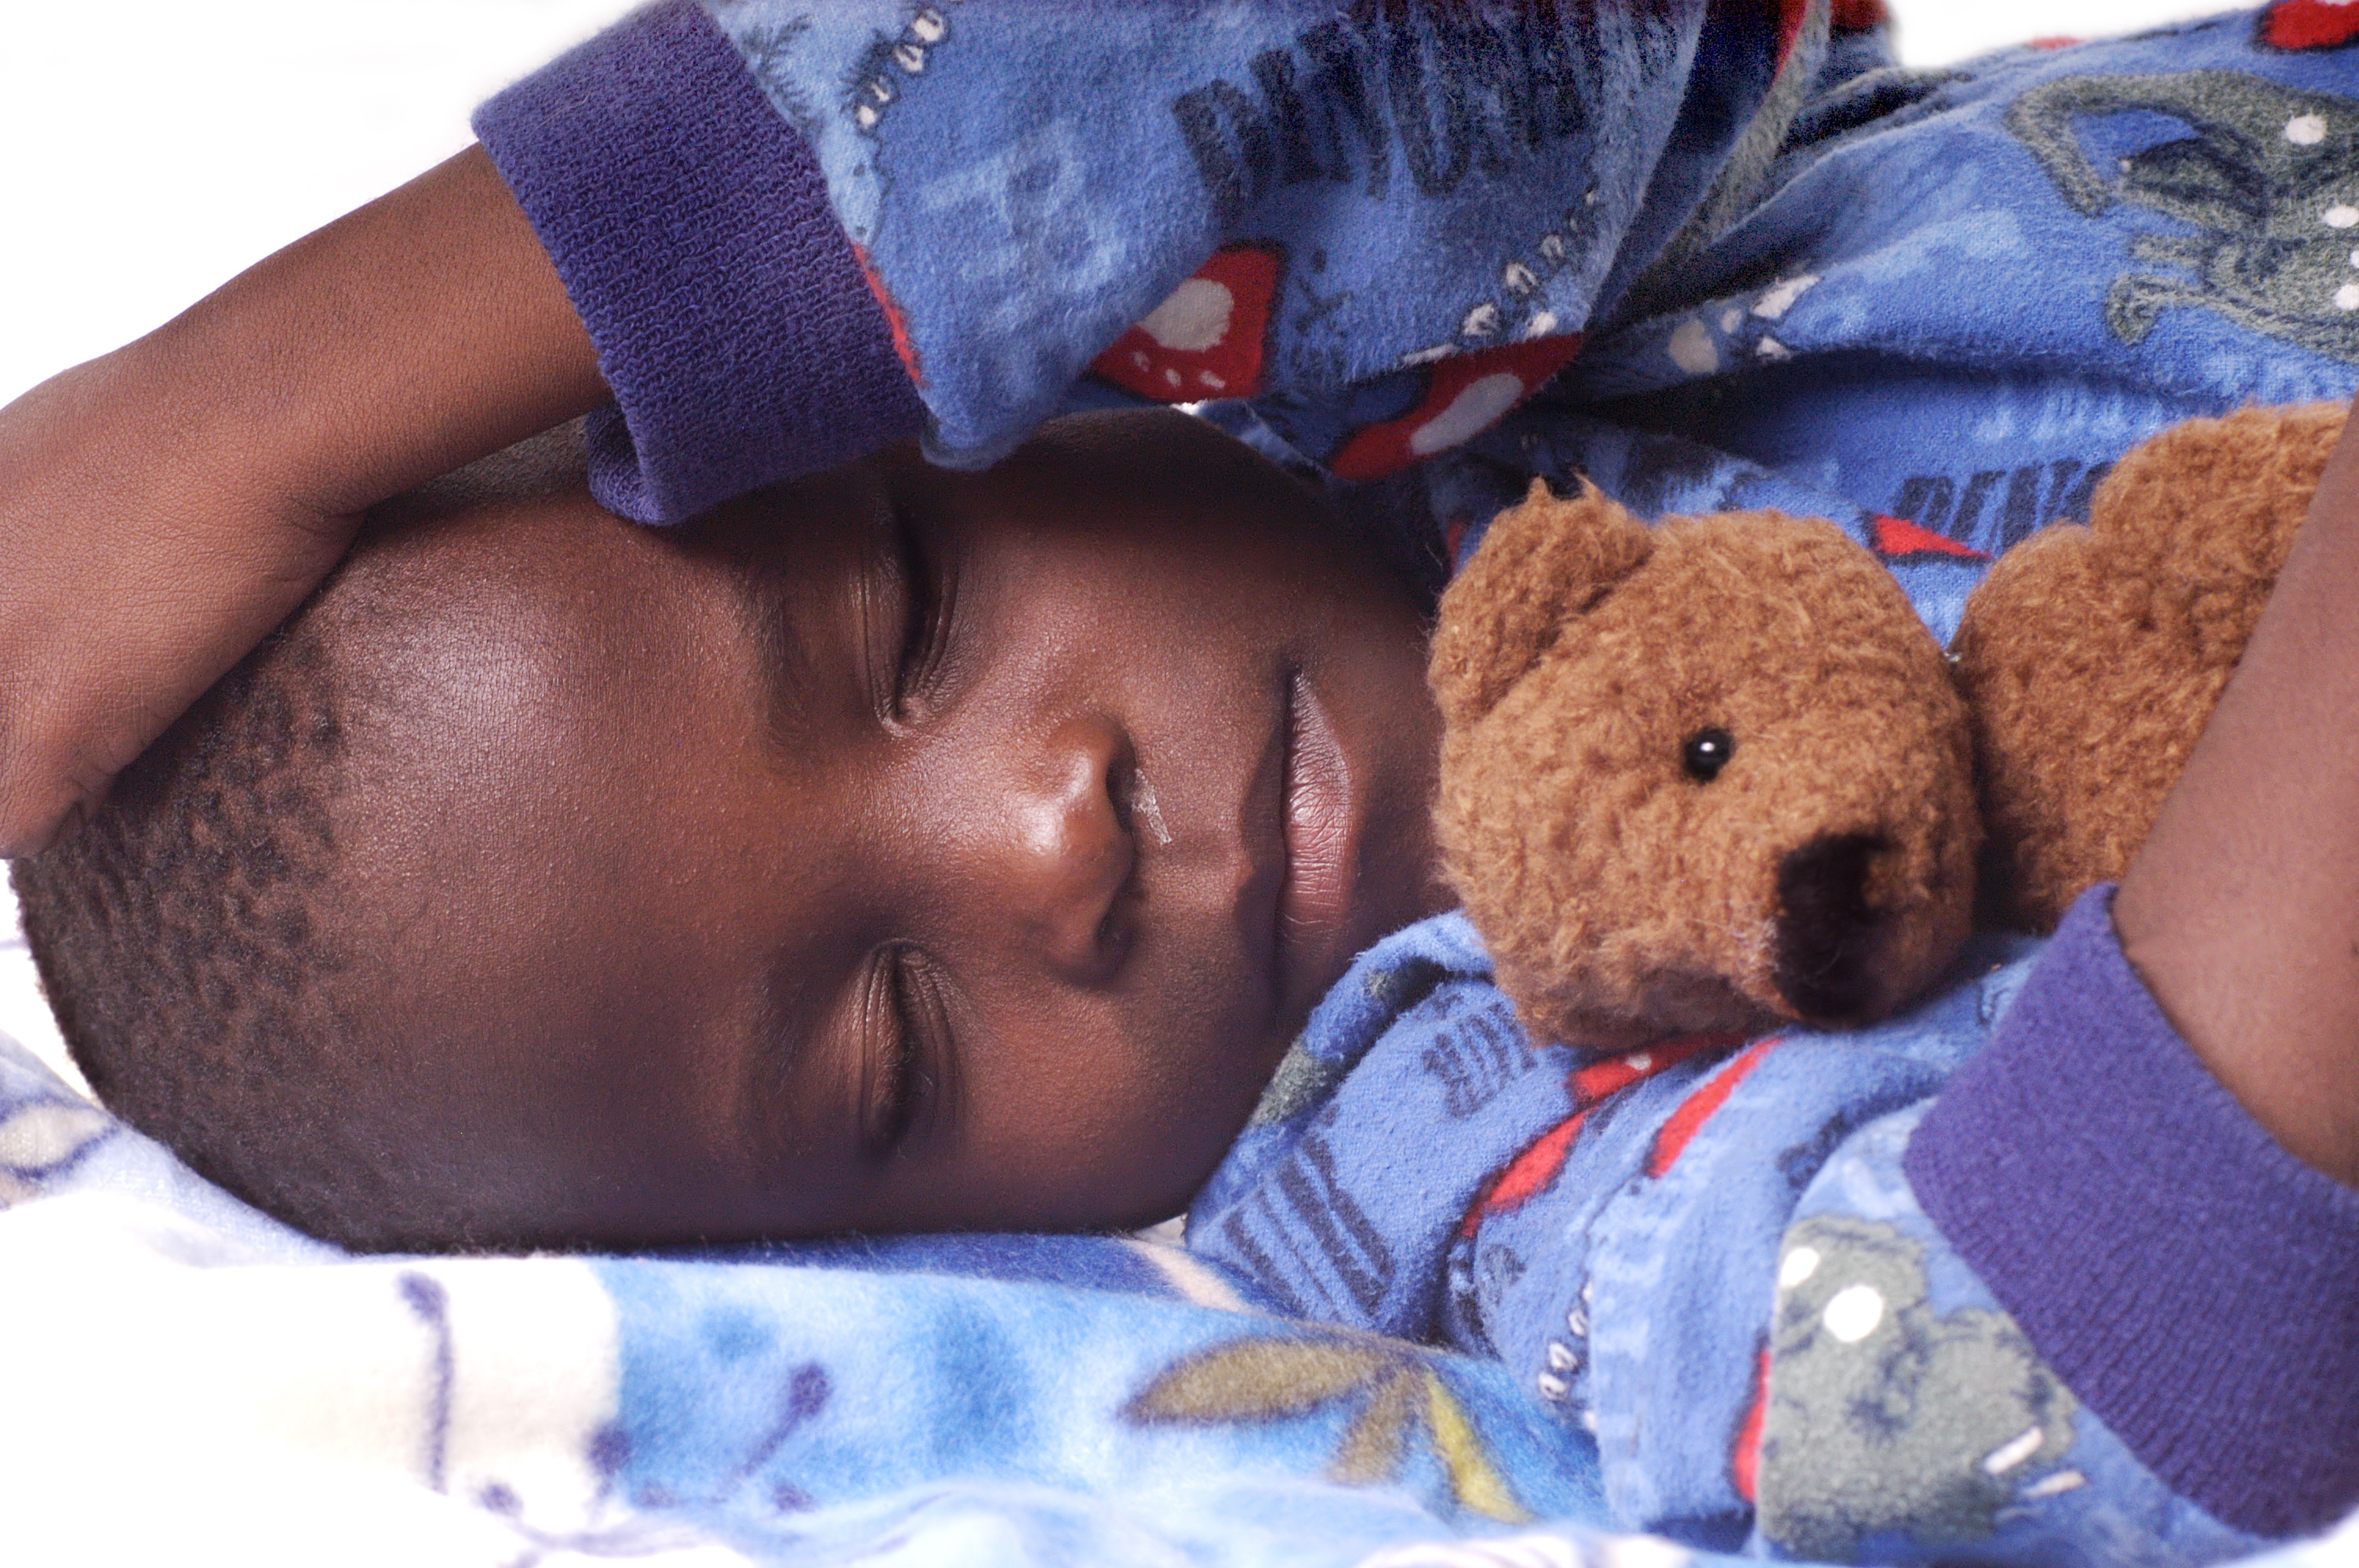 things you might not know are keeping your kid up at night the kid sleep